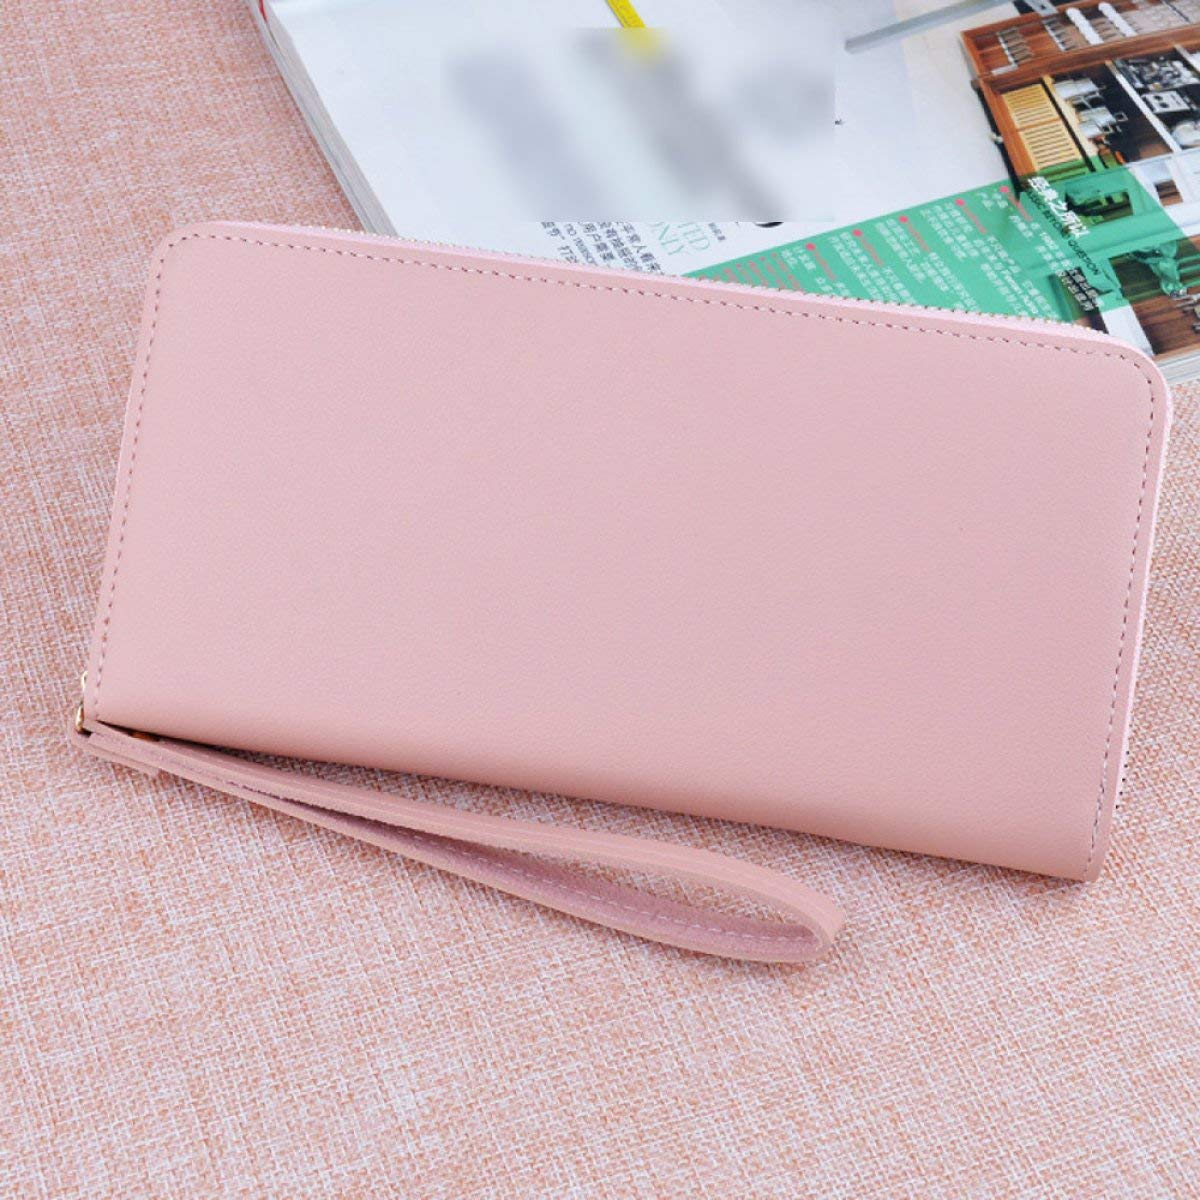 A Cross Fashion Simple Long Zipper Ladies Wallet Large Capacity MultiCard Mobile Wallet Wallet with Hand Strap for Work (color   E)